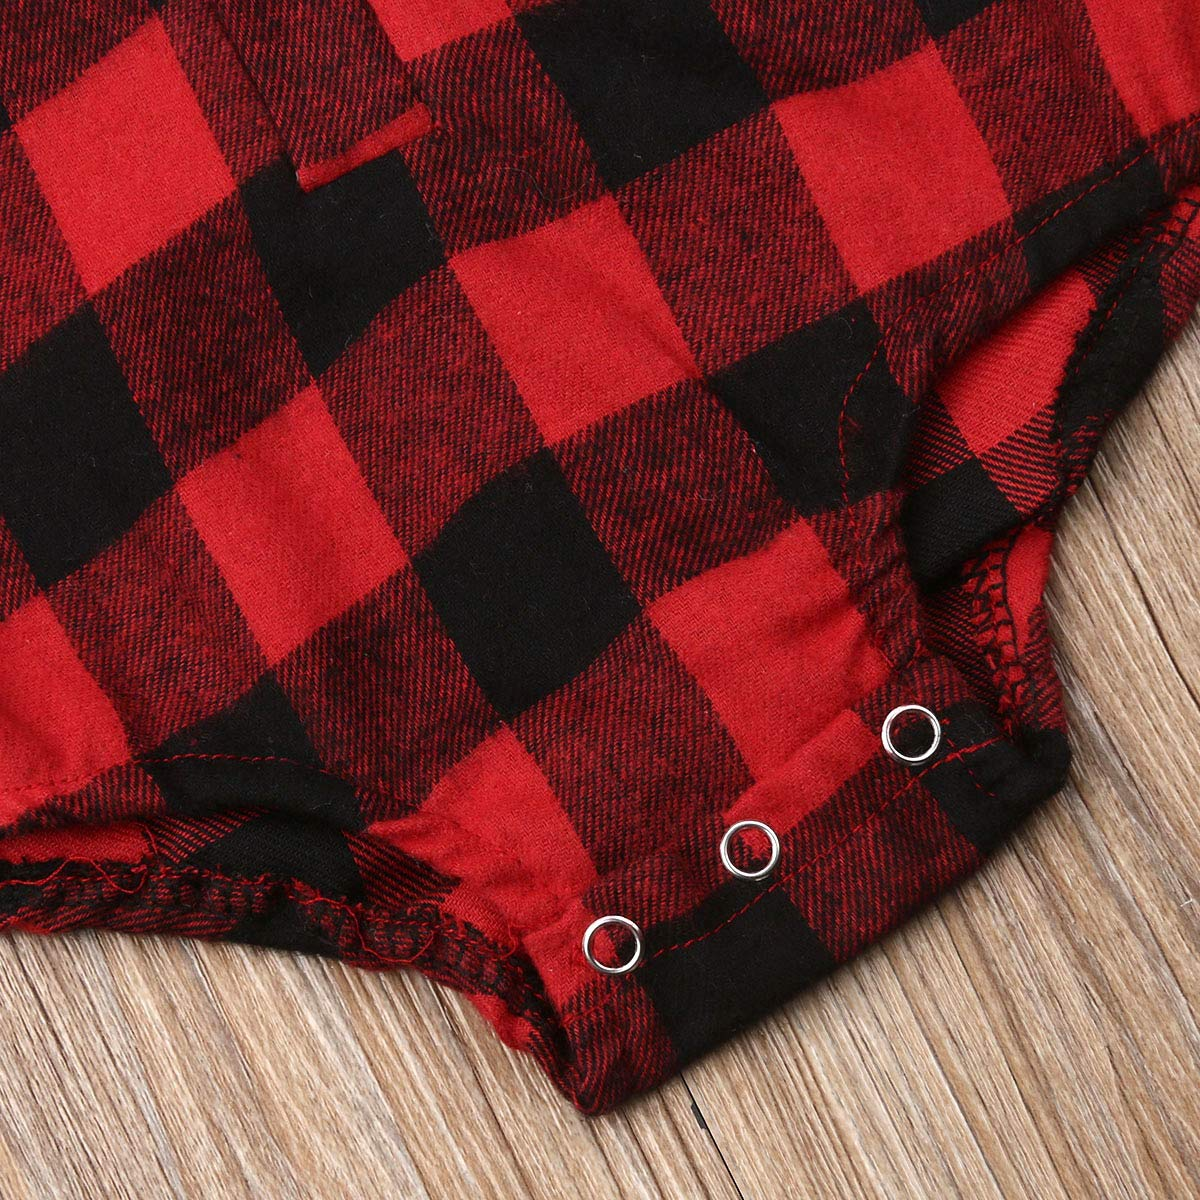 PERILA New Baby Girl Boy Christmas Elk Romper Infant Kids Plaid Blouse Bodysuit Long Sleeve Outfits Clothes for 0-18 Years